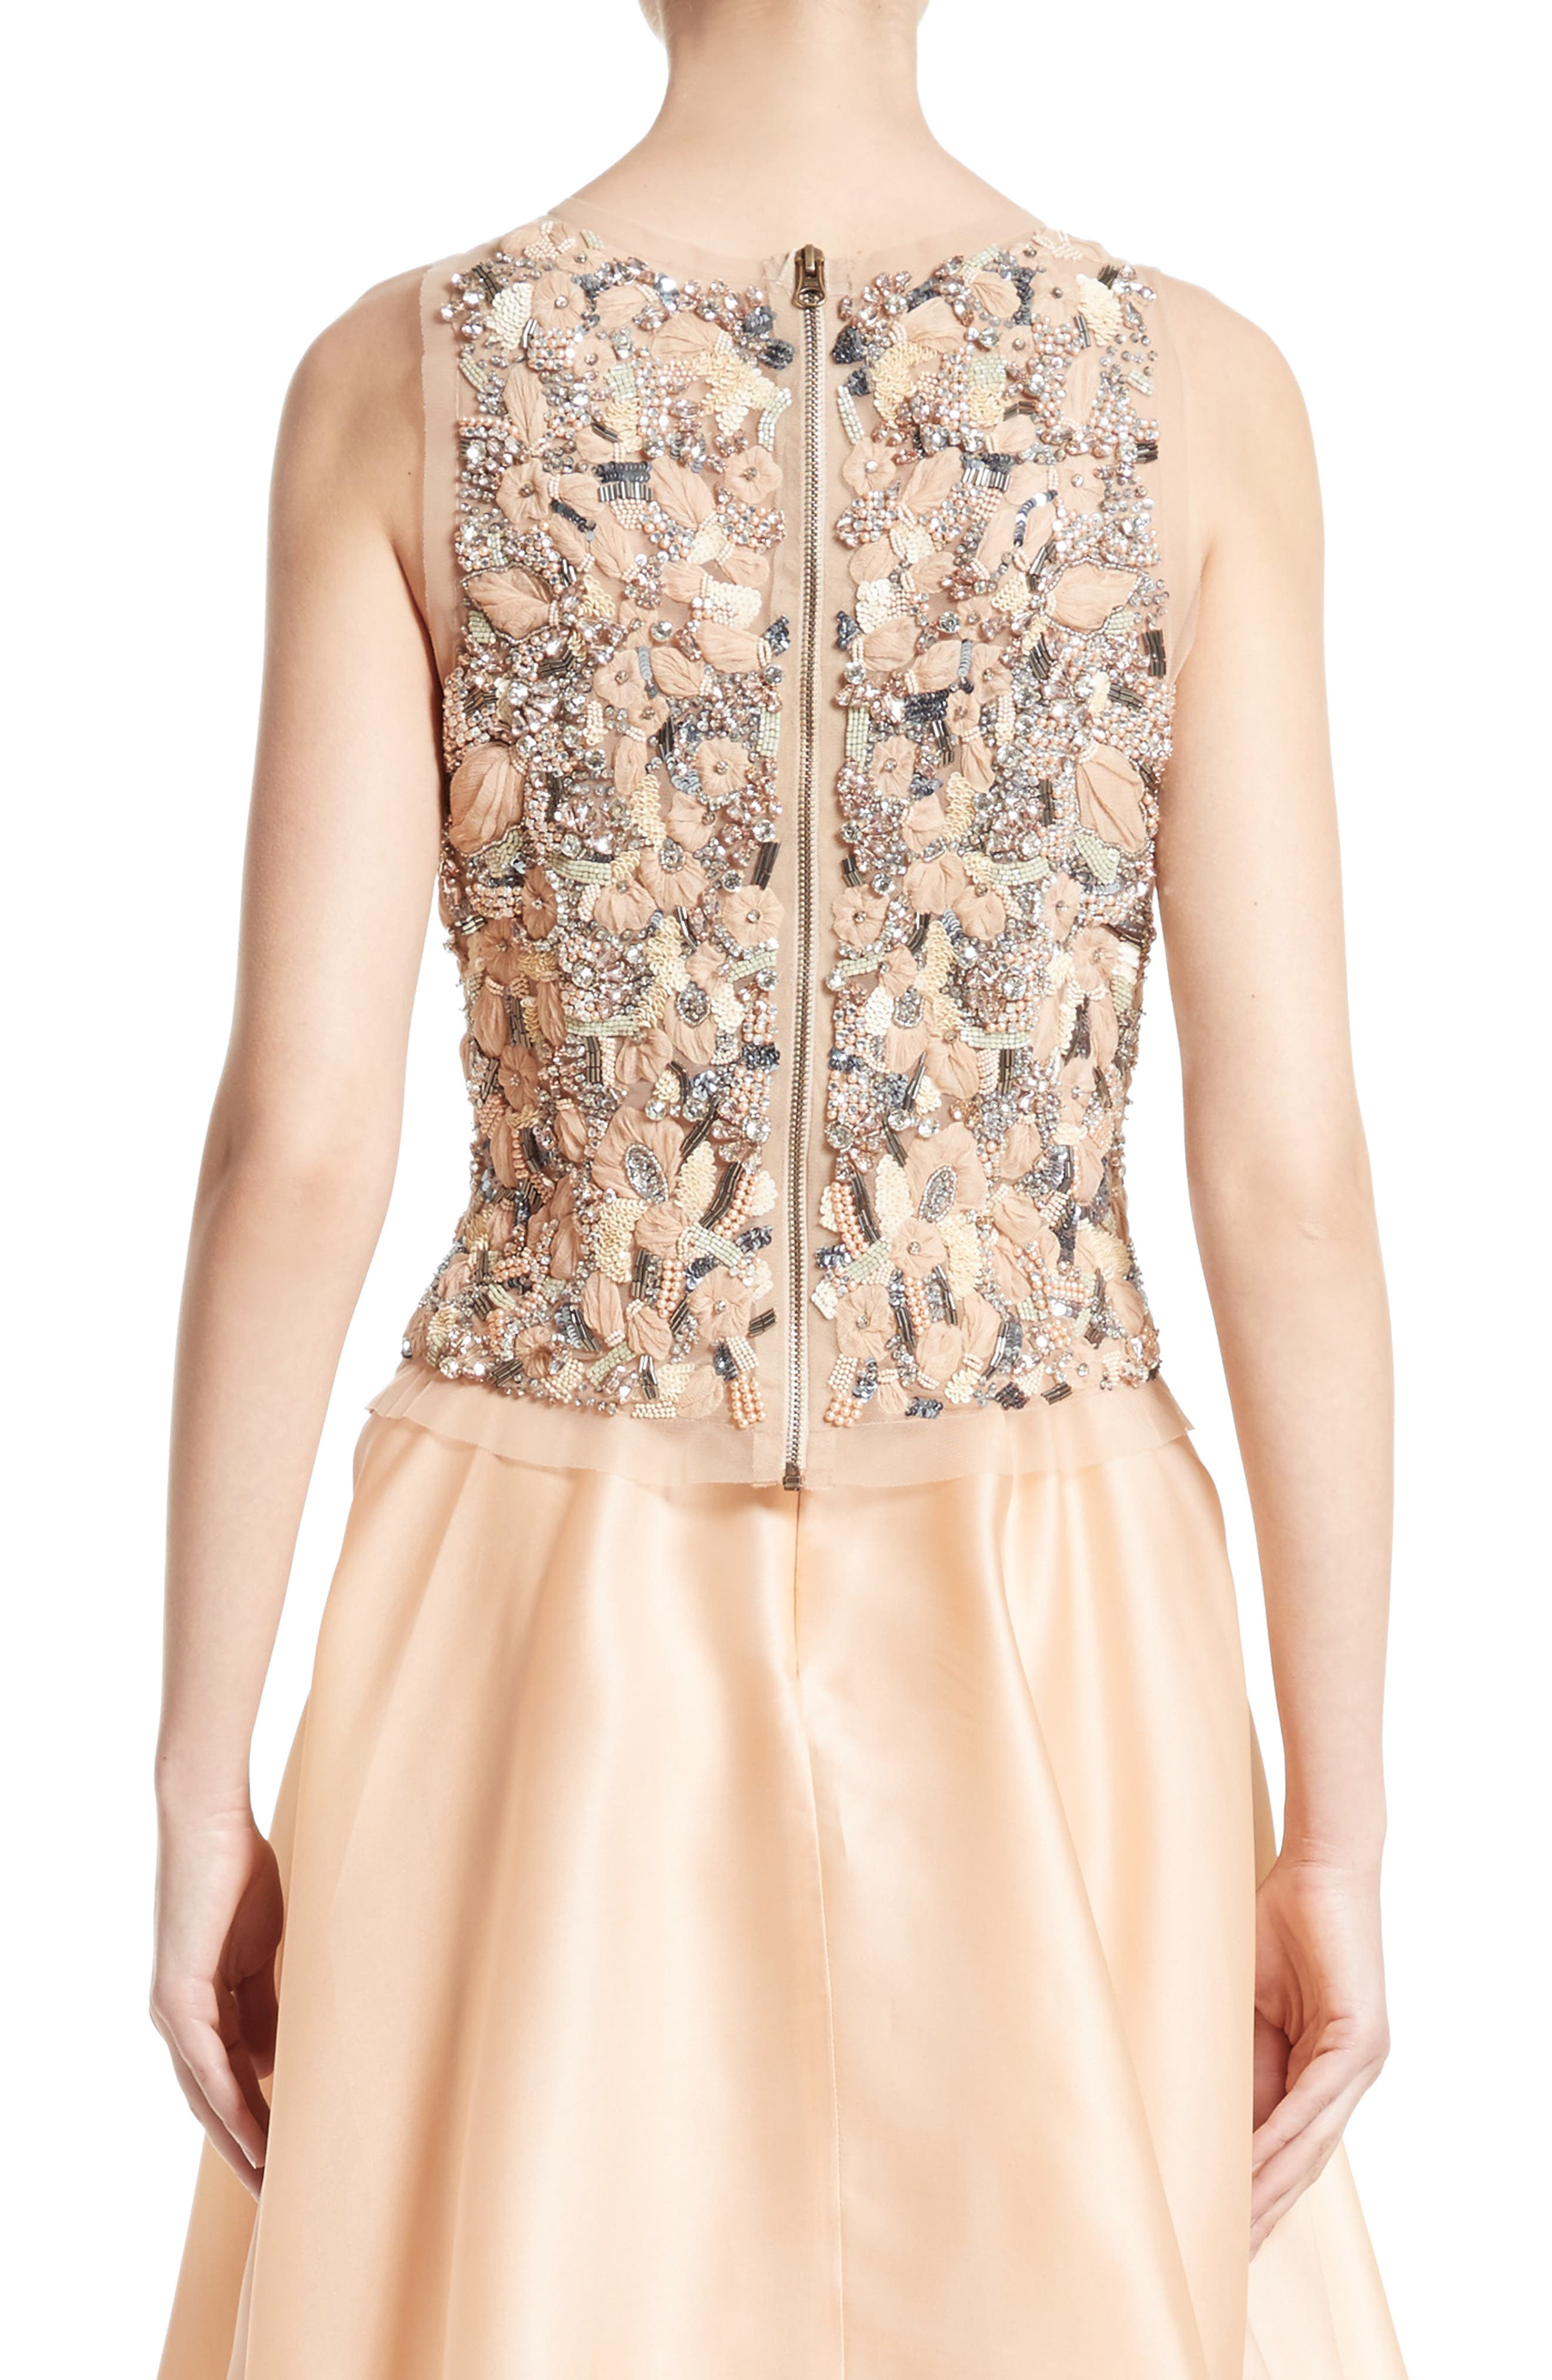 Badgley Mischka Couture Beaded Top,                             Alternate thumbnail 2, color,                             Peach